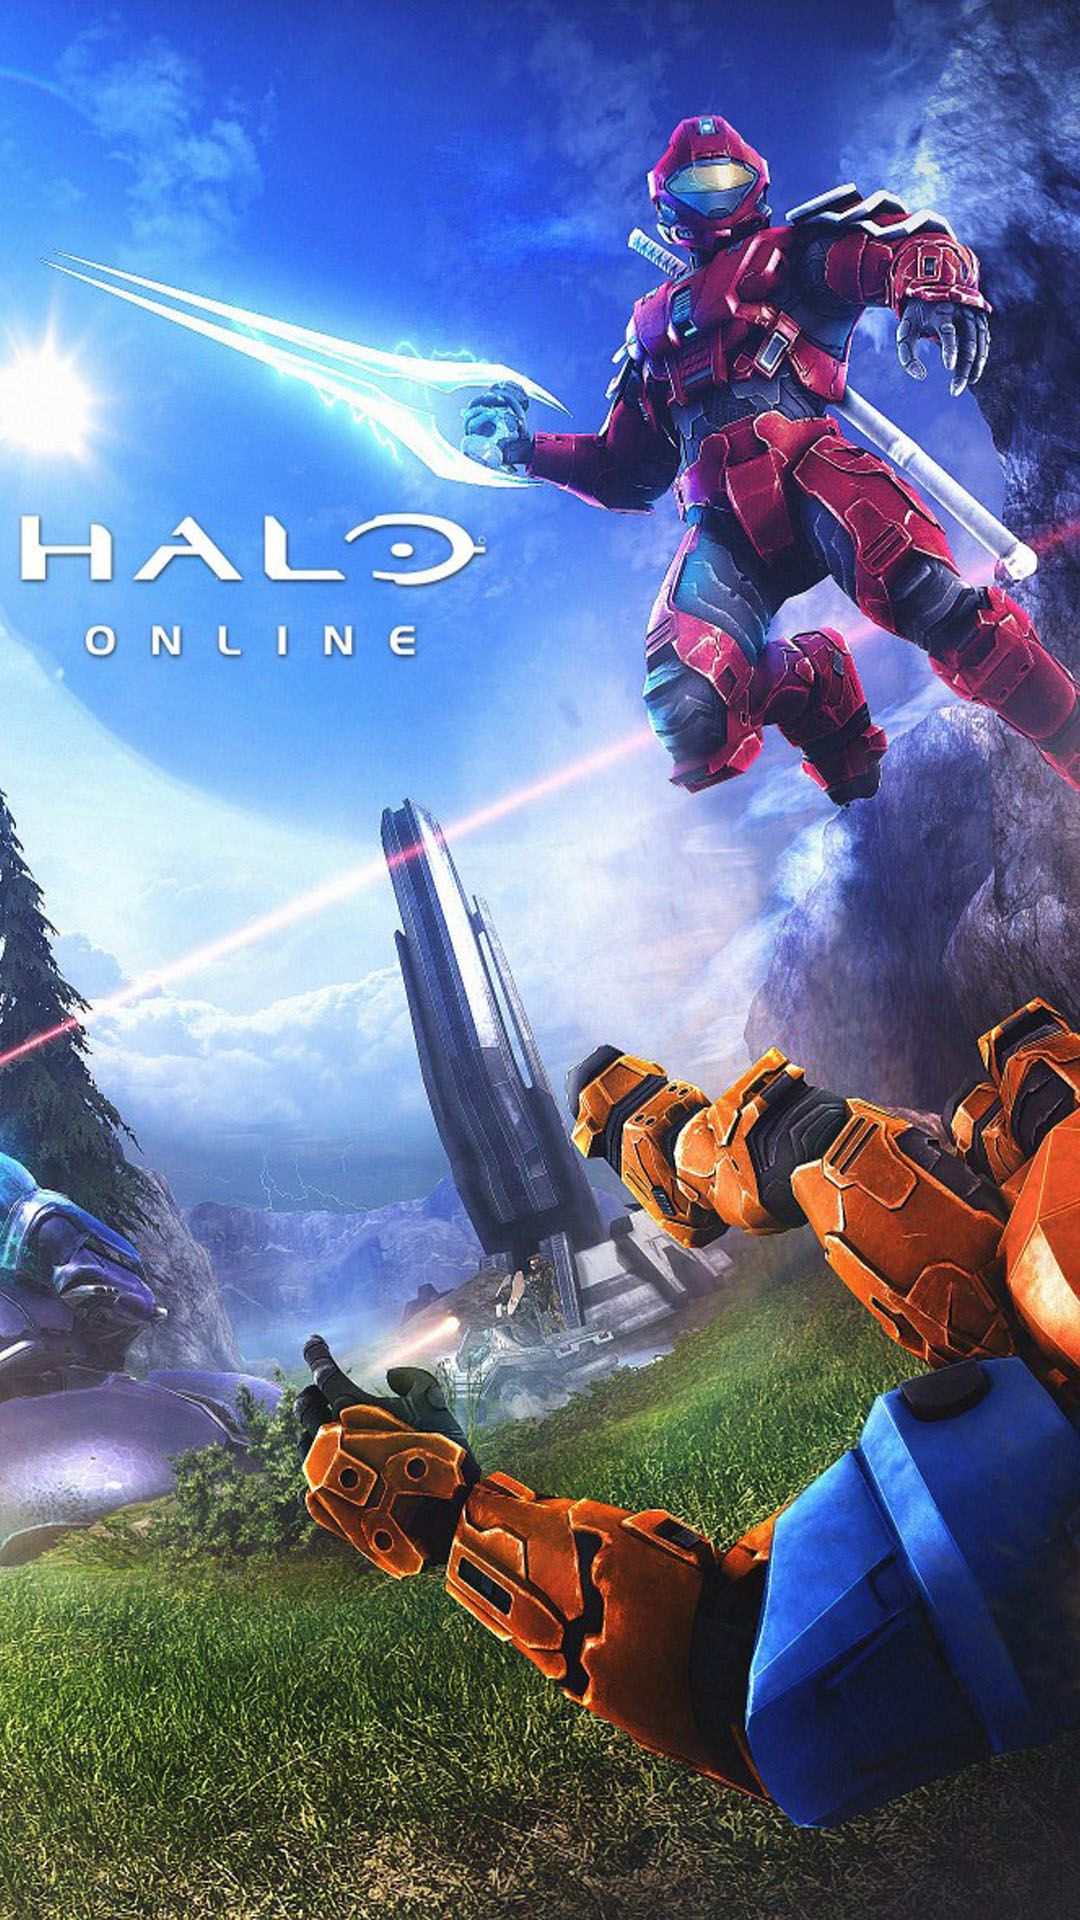 Halo Wallpaper Home Screen in 2020 Wallpaper, Video game